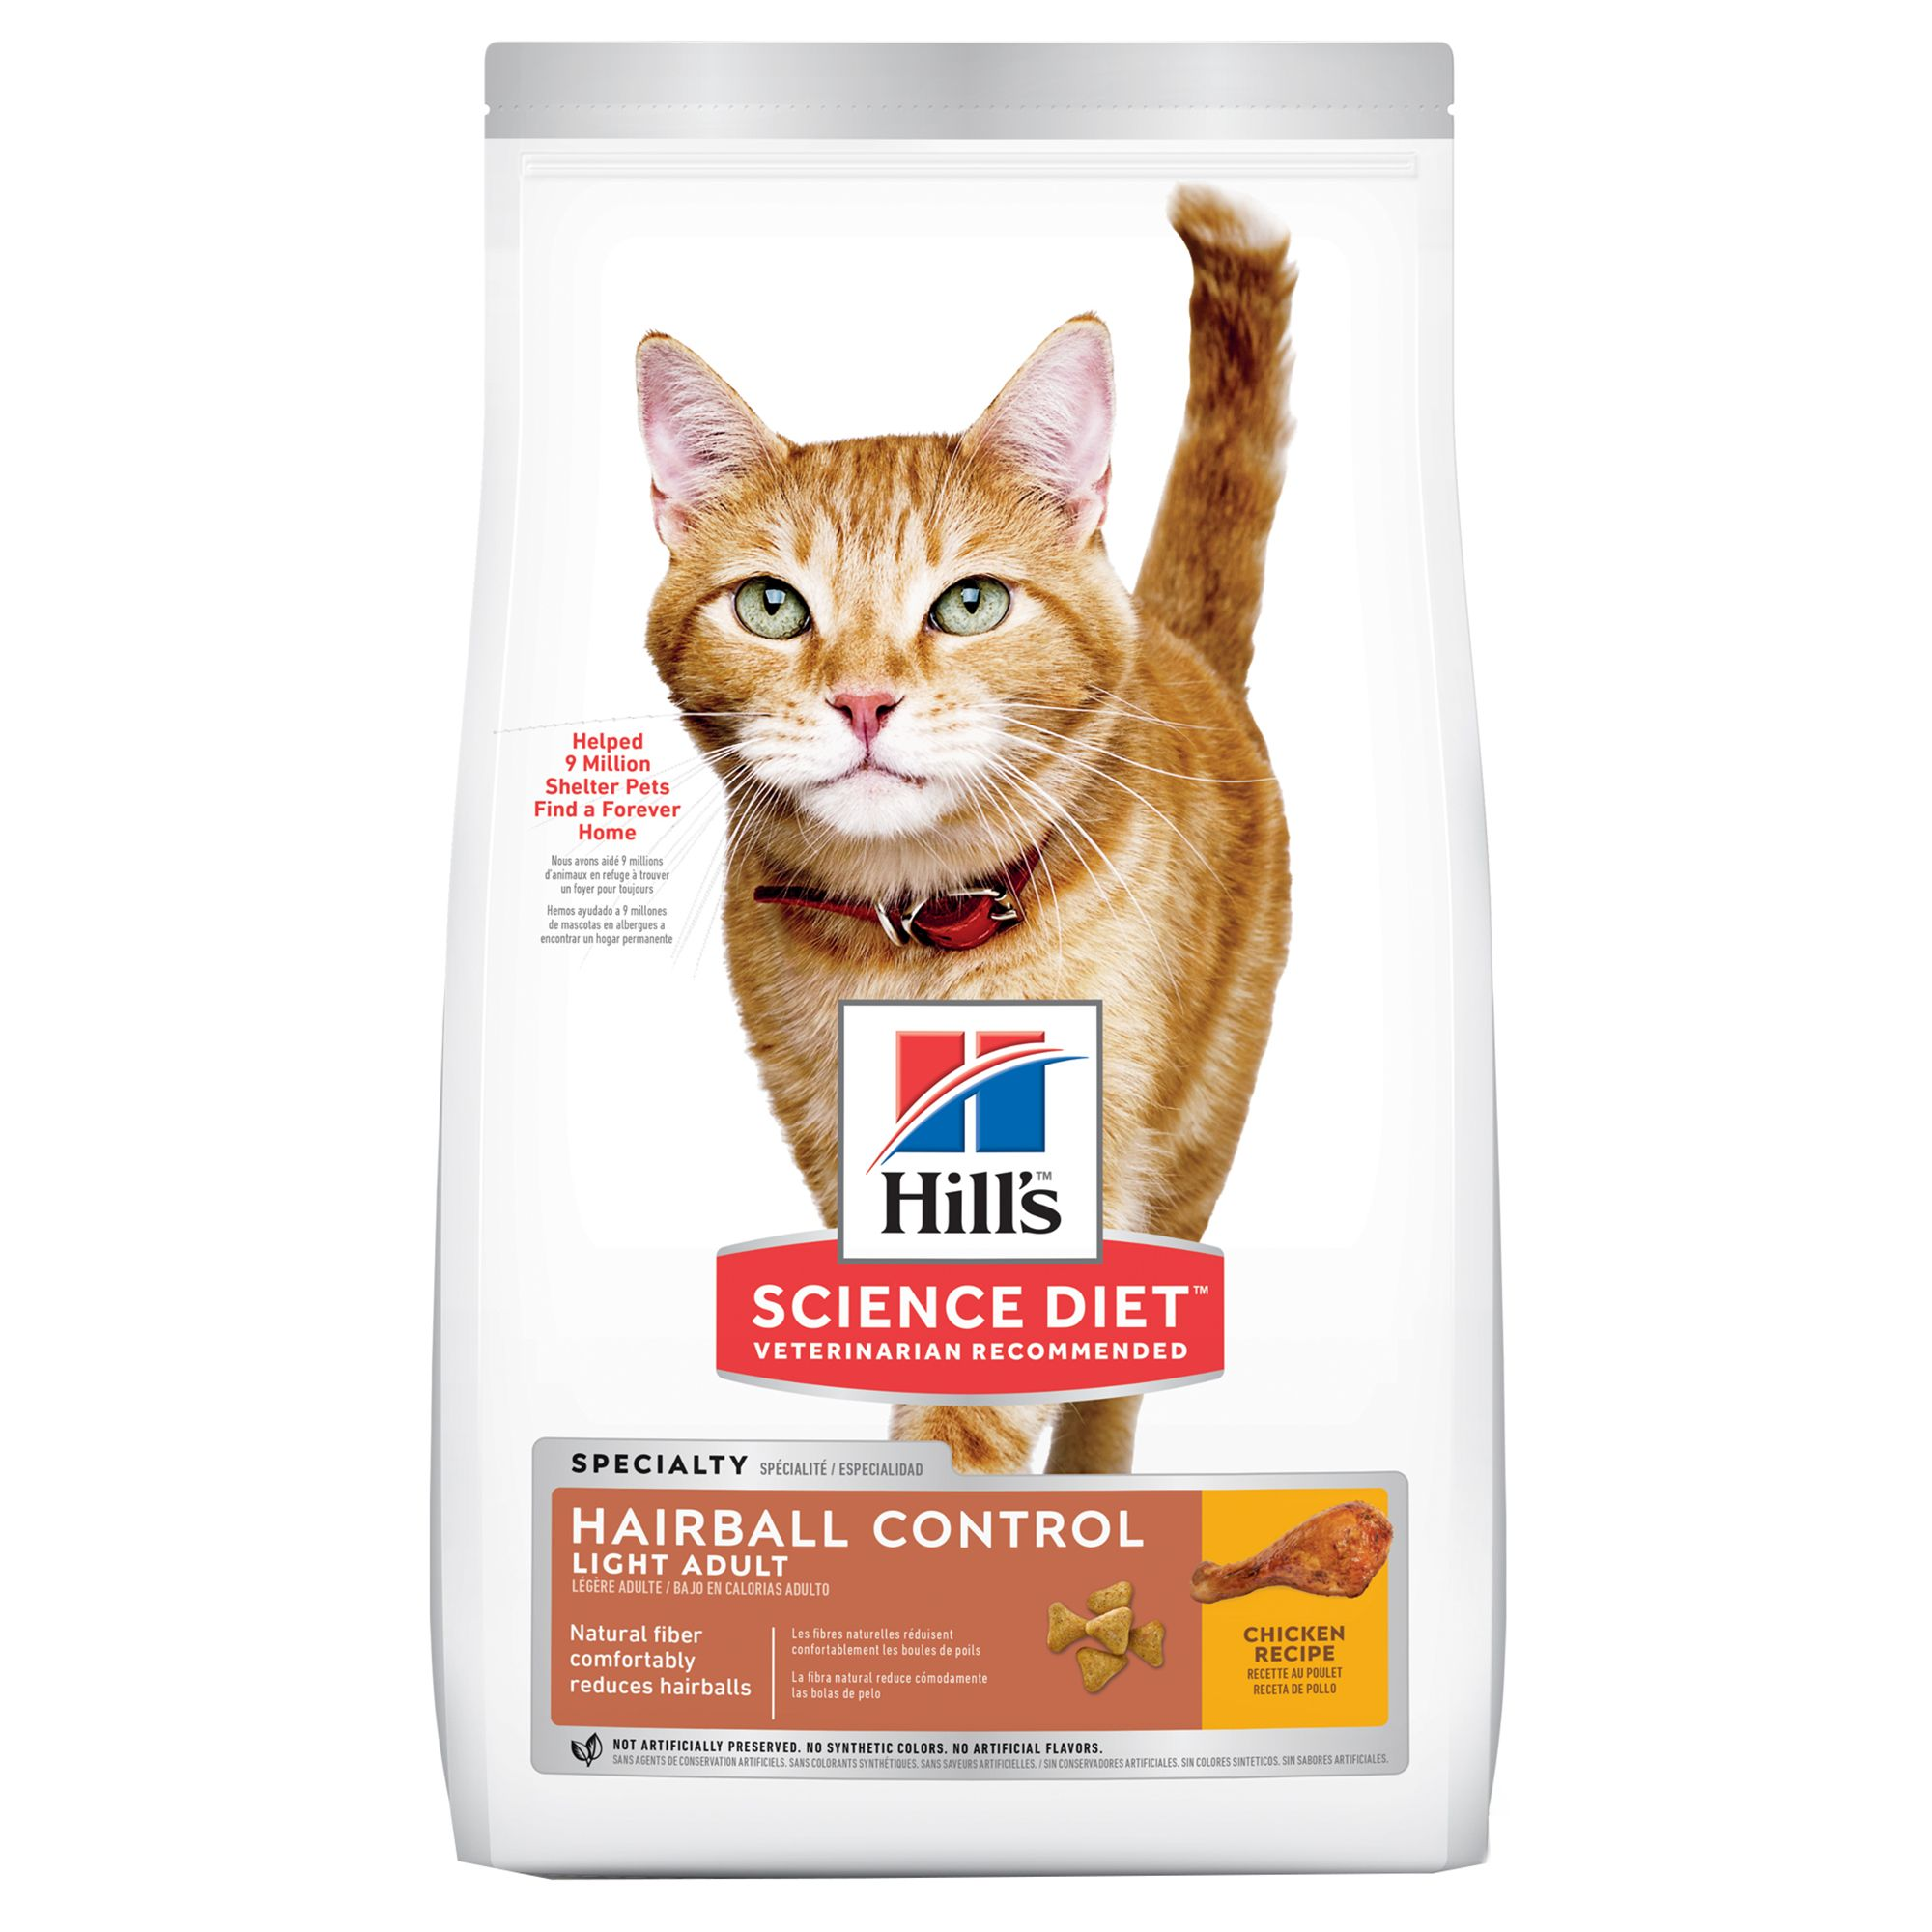 Hill's Science Diet Hairball Control Light Adult Cat Food - Chicken size: 15.5 Lb, Kibble 5154819